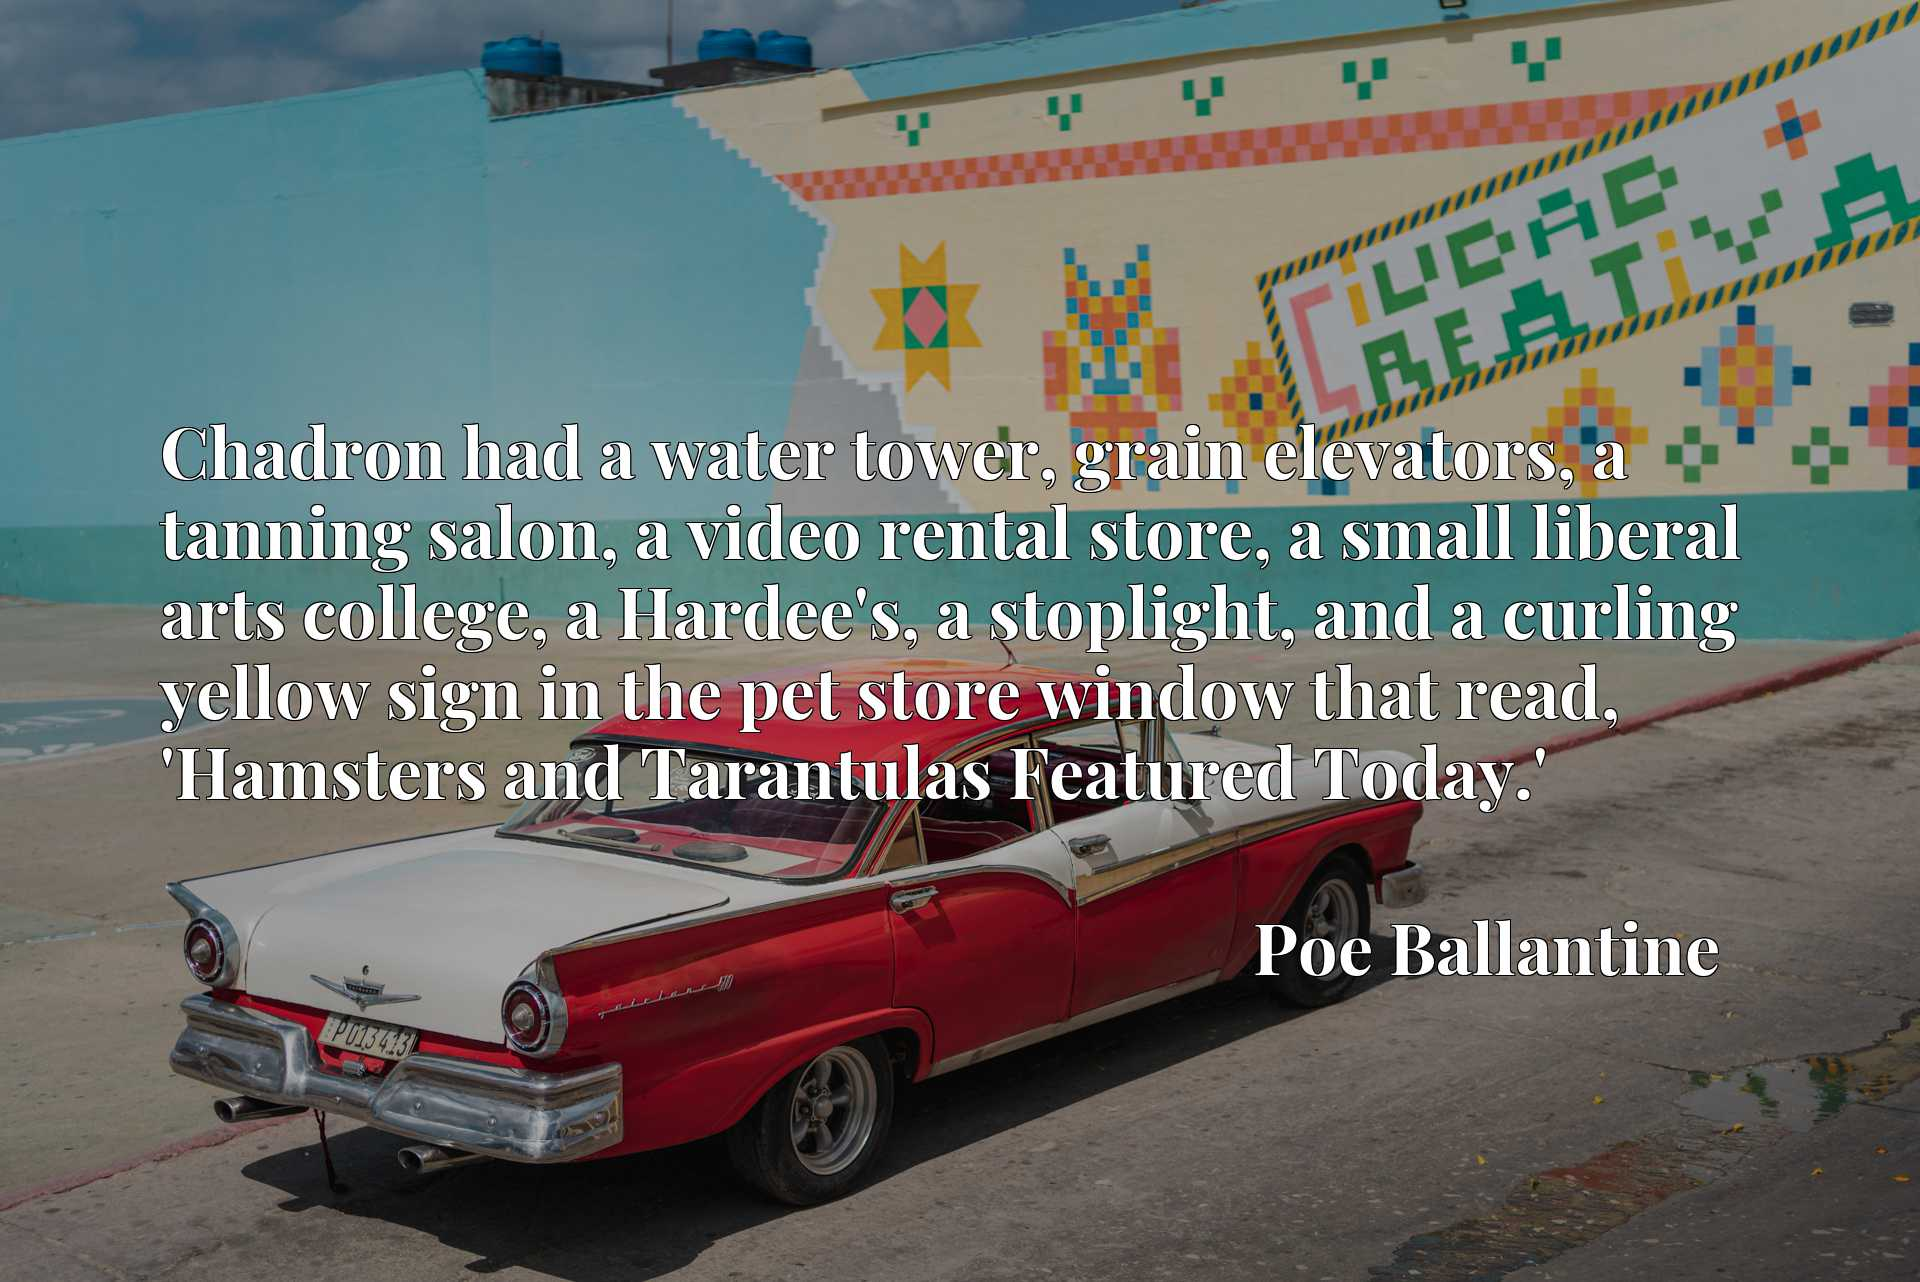 Chadron had a water tower, grain elevators, a tanning salon, a video rental store, a small liberal arts college, a Hardee's, a stoplight, and a curling yellow sign in the pet store window that read, 'Hamsters and Tarantulas Featured Today.'